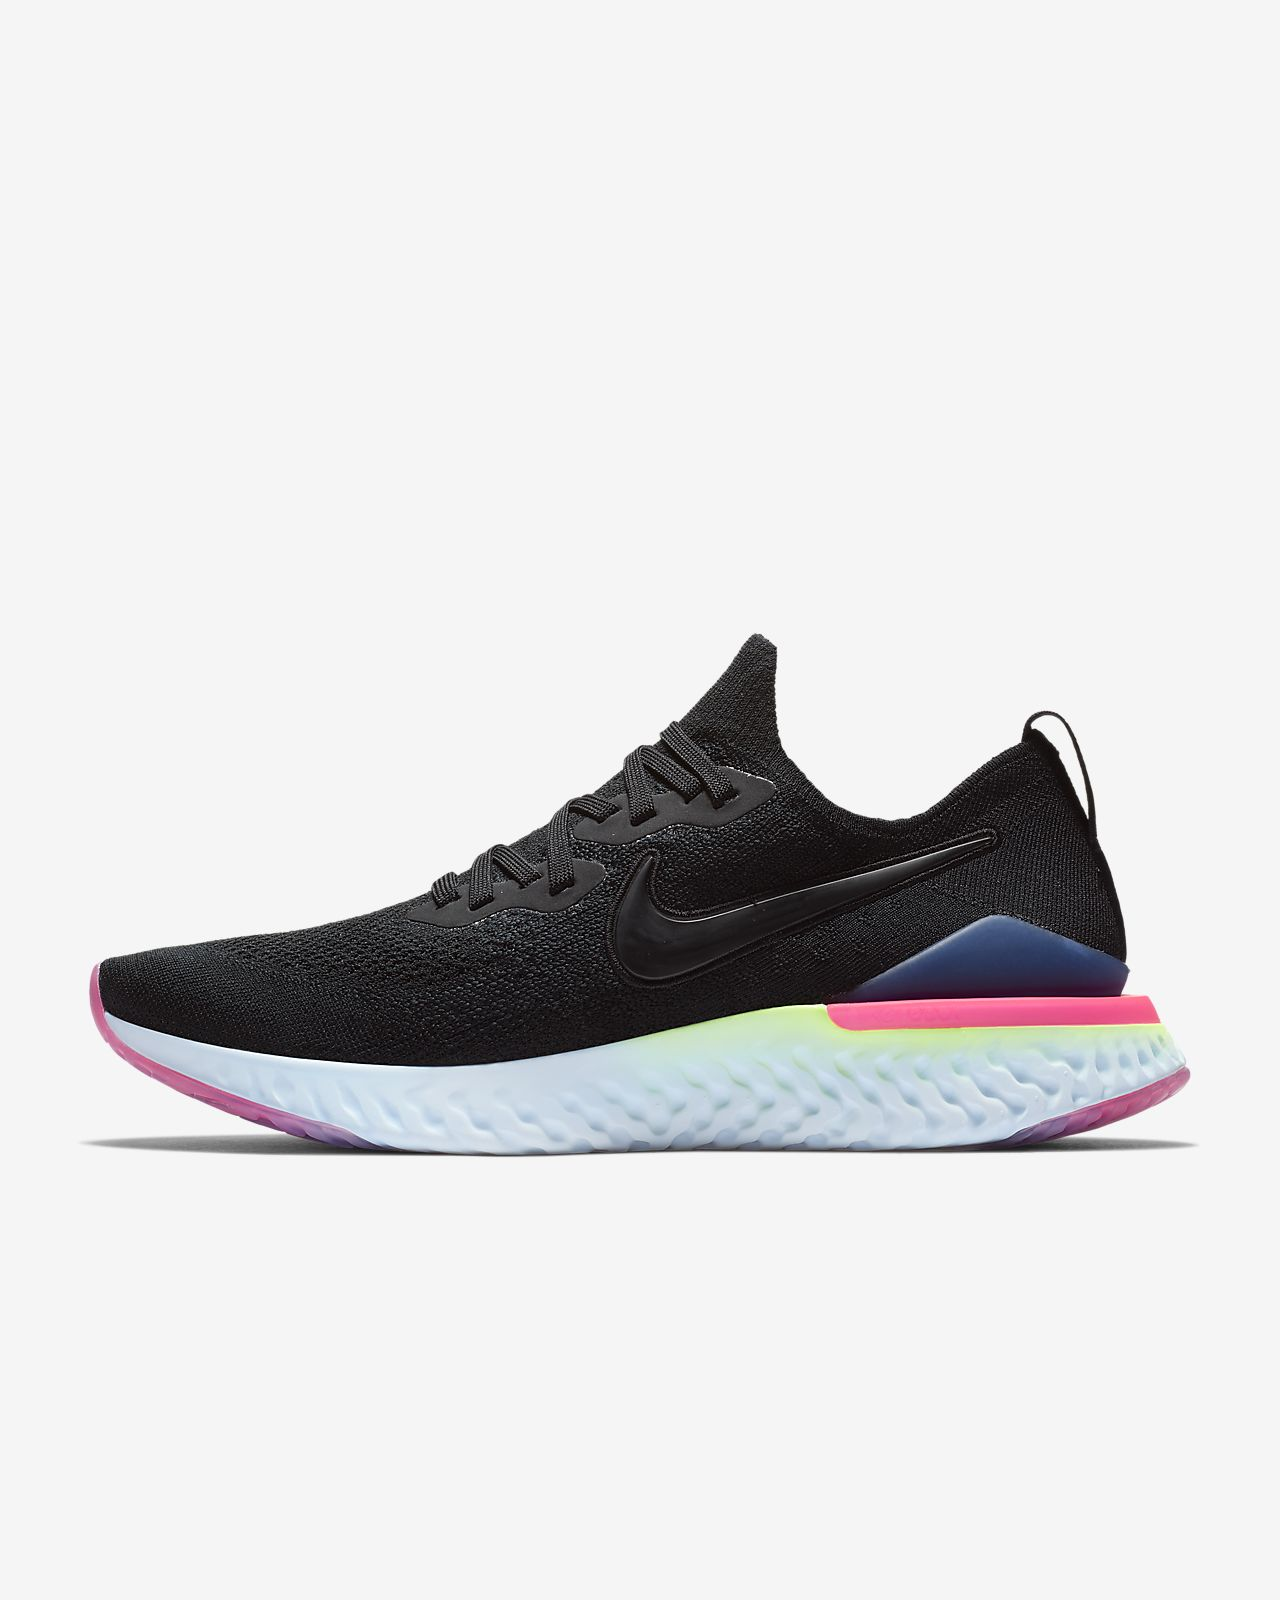 Nike Epic React Flyknit 2 Men's Running Shoe